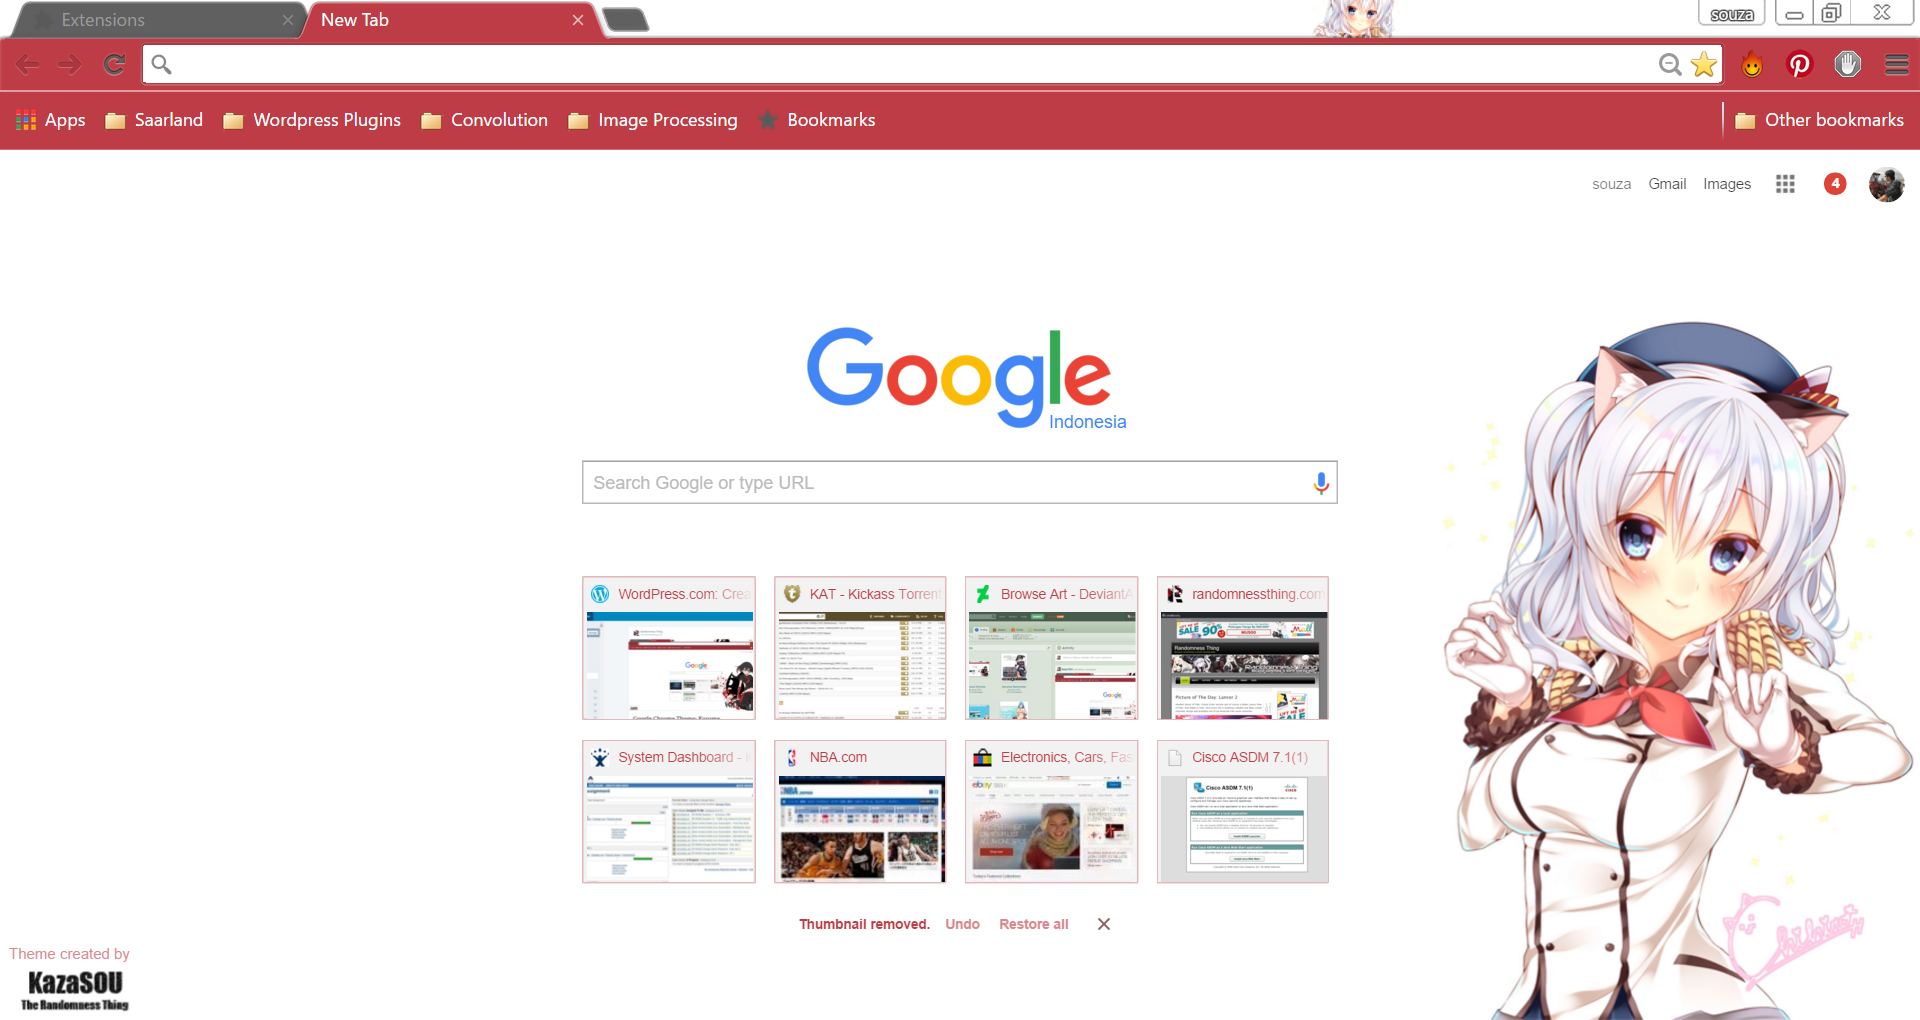 Google chrome themes and skins - Another Kashima Google Chrome Theme Needs To Be Done Since She Becomes The Highlight In This